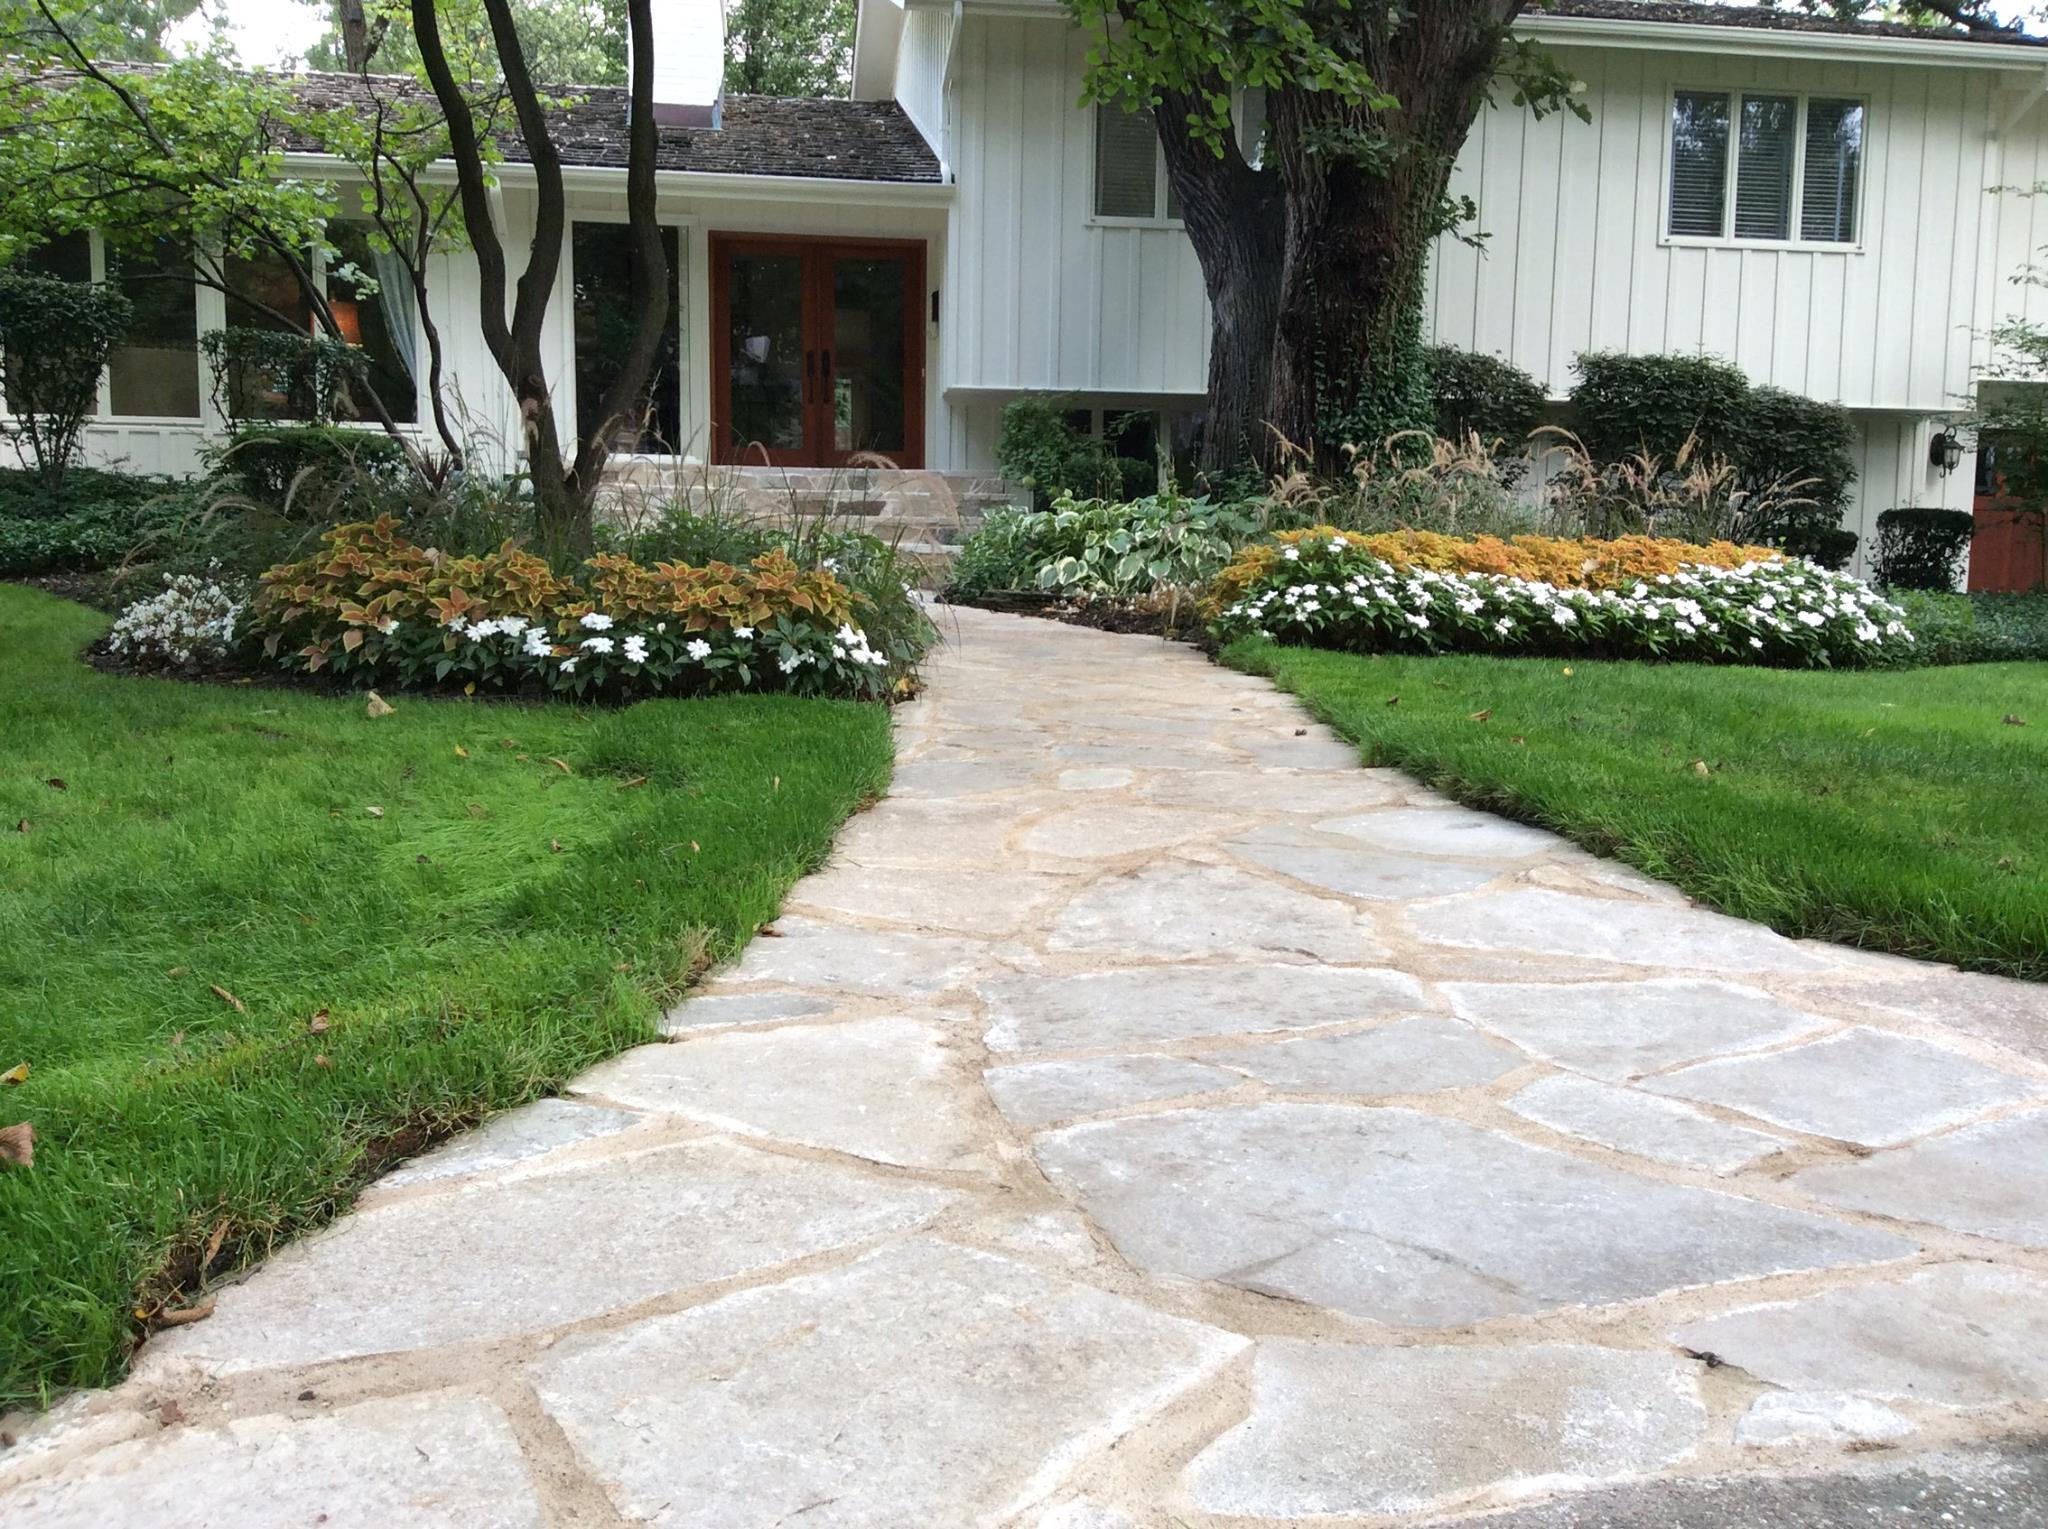 Brick paving, sod installation, brick driveway and other landscaping services on display in Hinsdale, IL